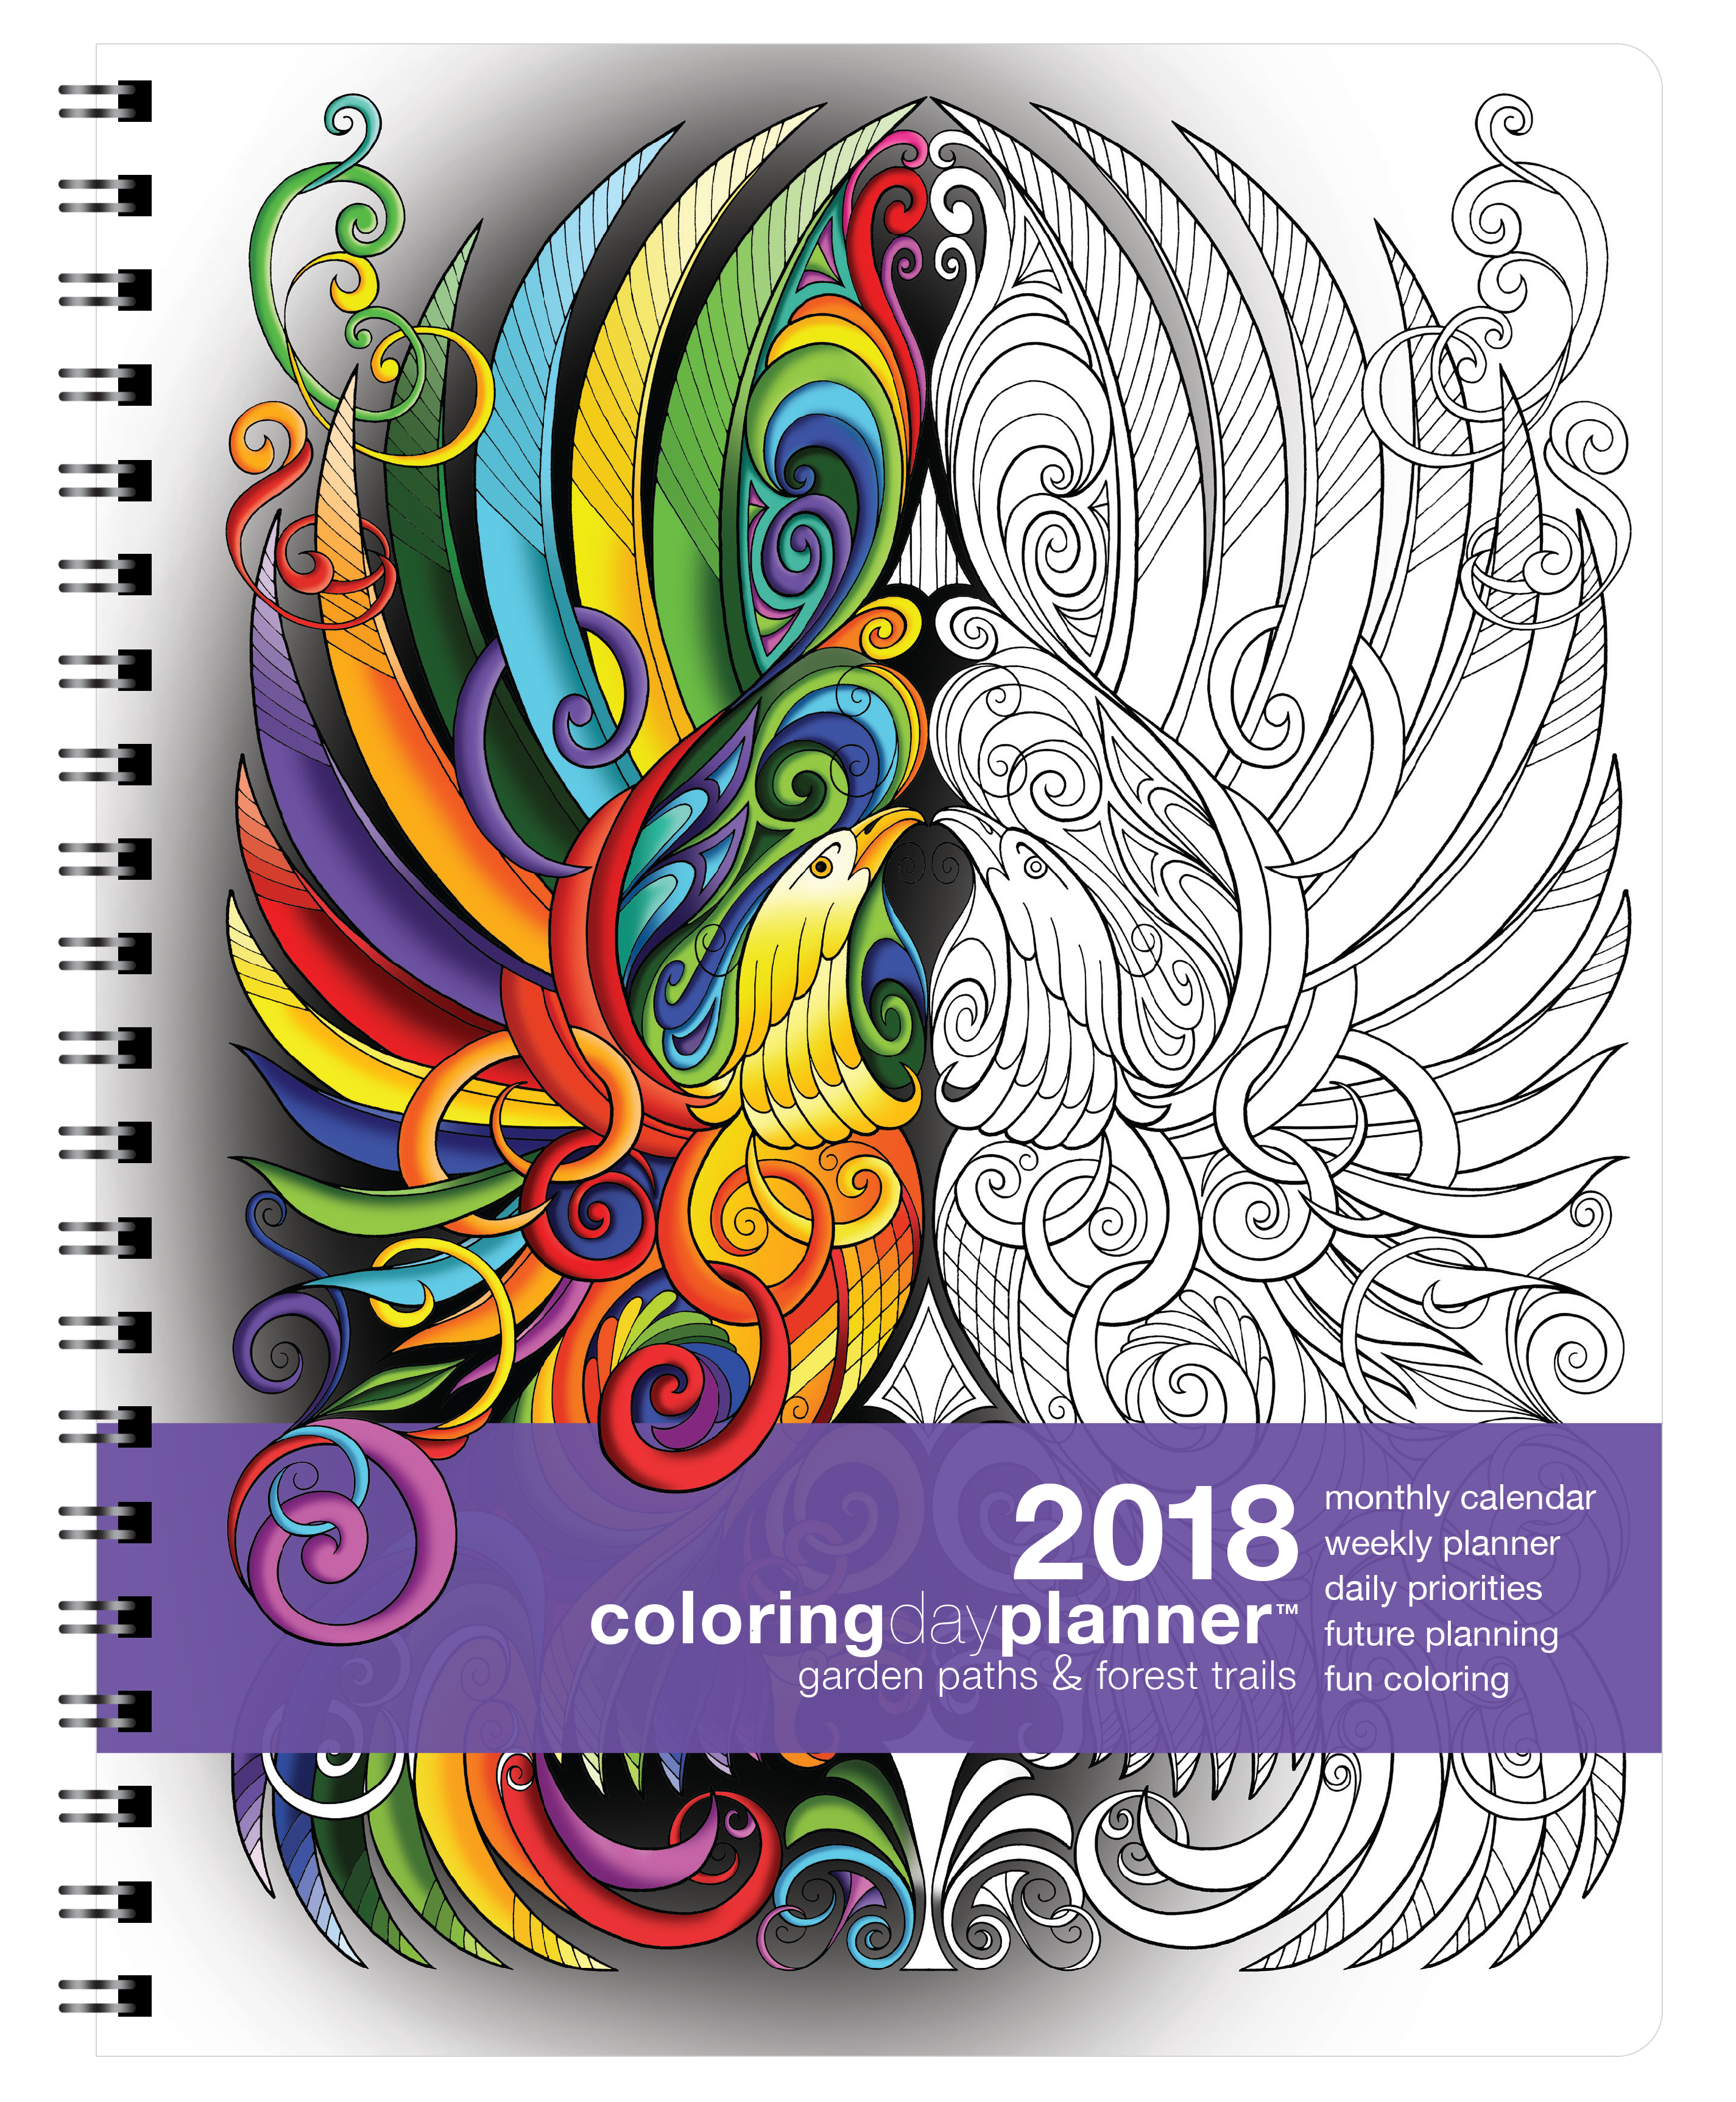 2018 Coloring Day Planner Garden Paths & Forest Trails | Kathryn ...